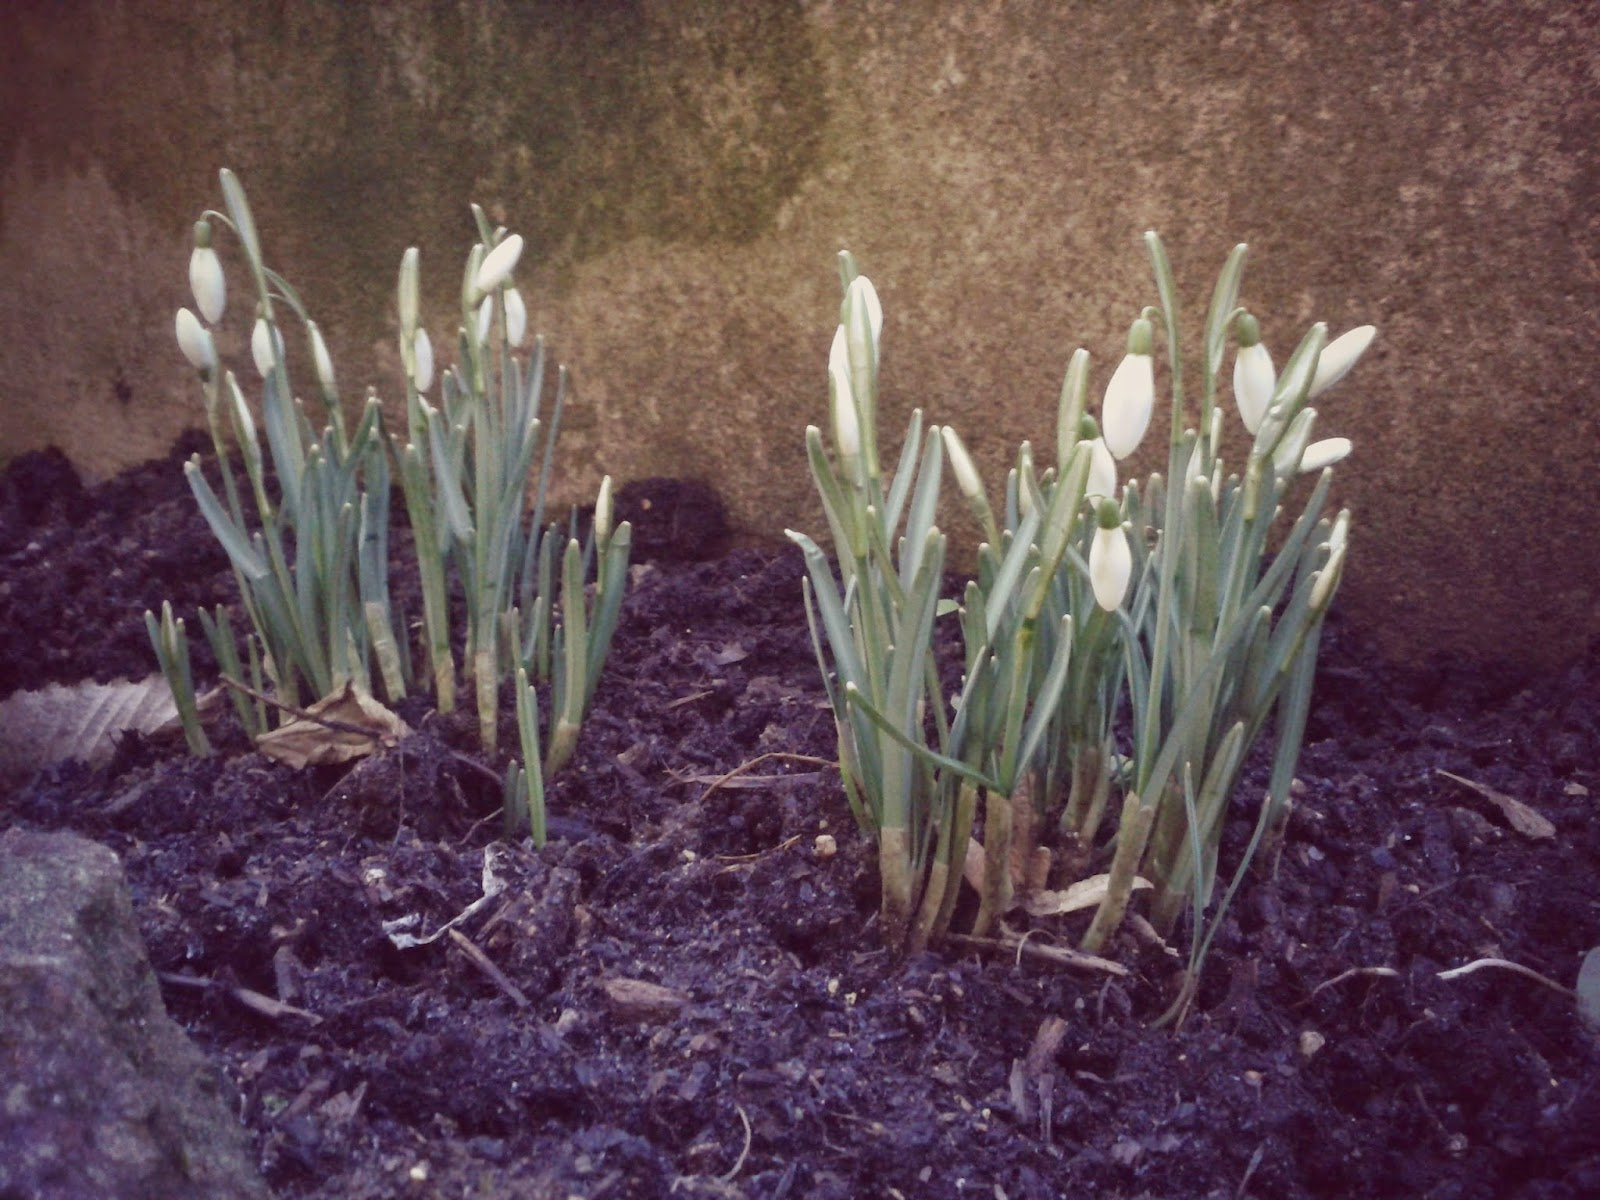 Project 365 day 36 - Snowdrops // 76sunflowers